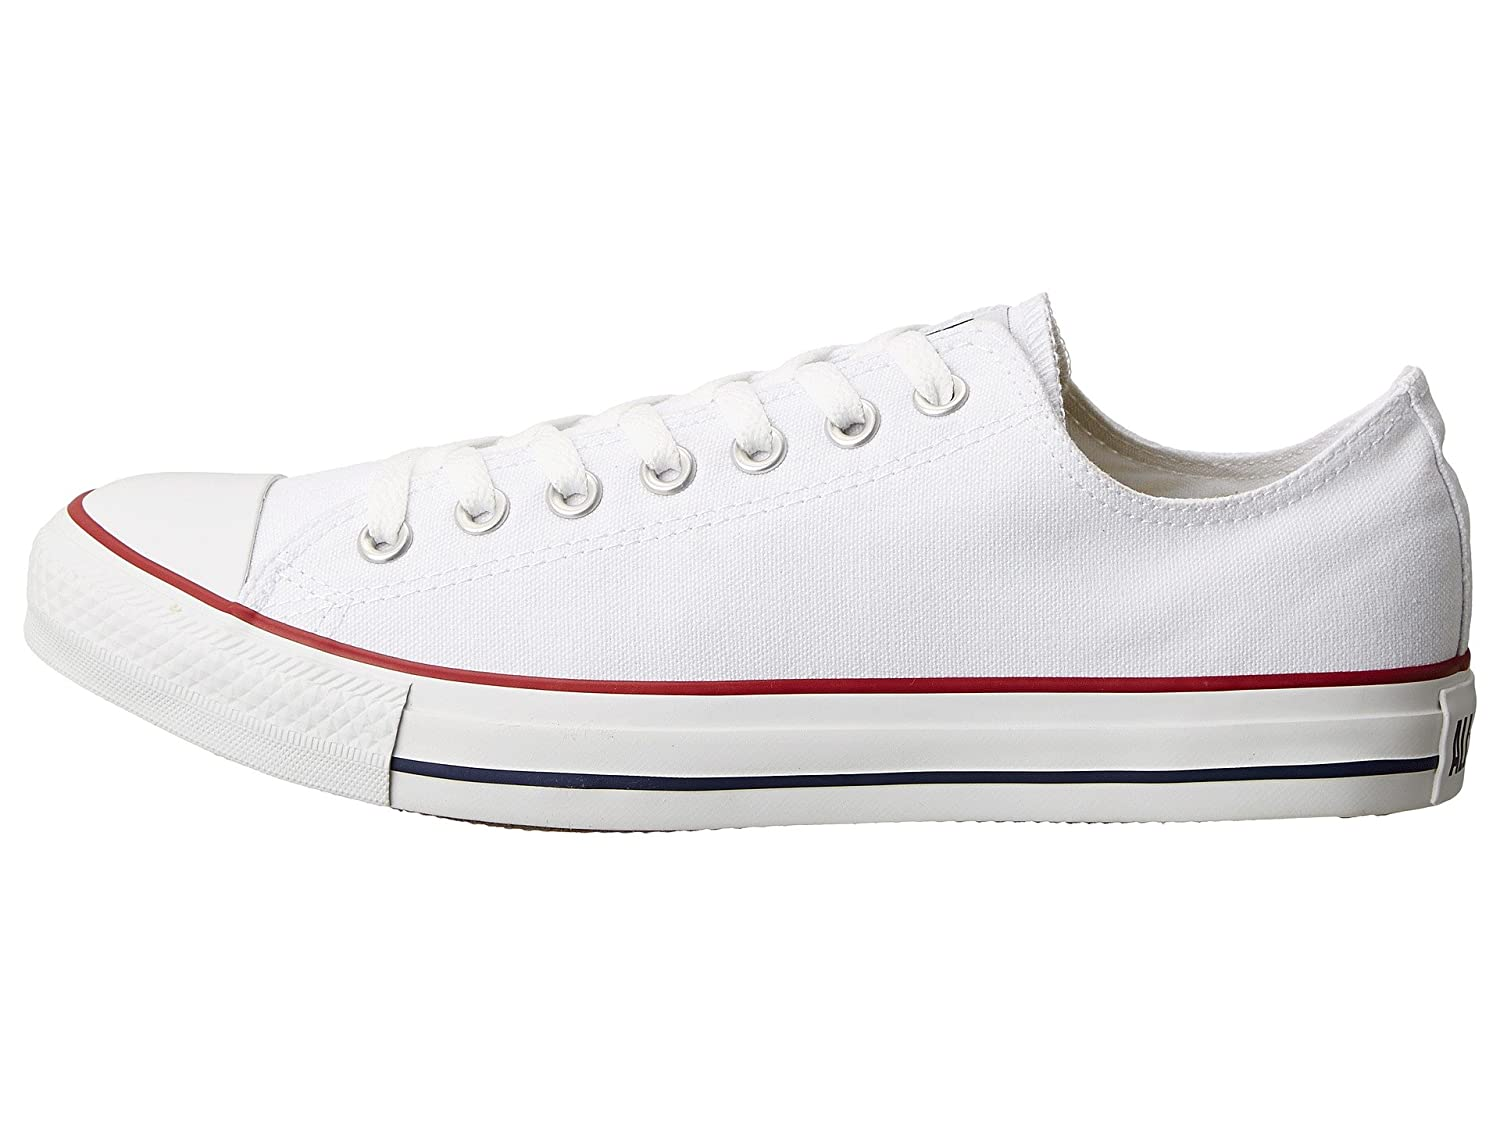 Converse Chuck Taylor All Star Speciality Hi, Sneaker in knalligen Leinwand Unisex Erwachsene Optical-white